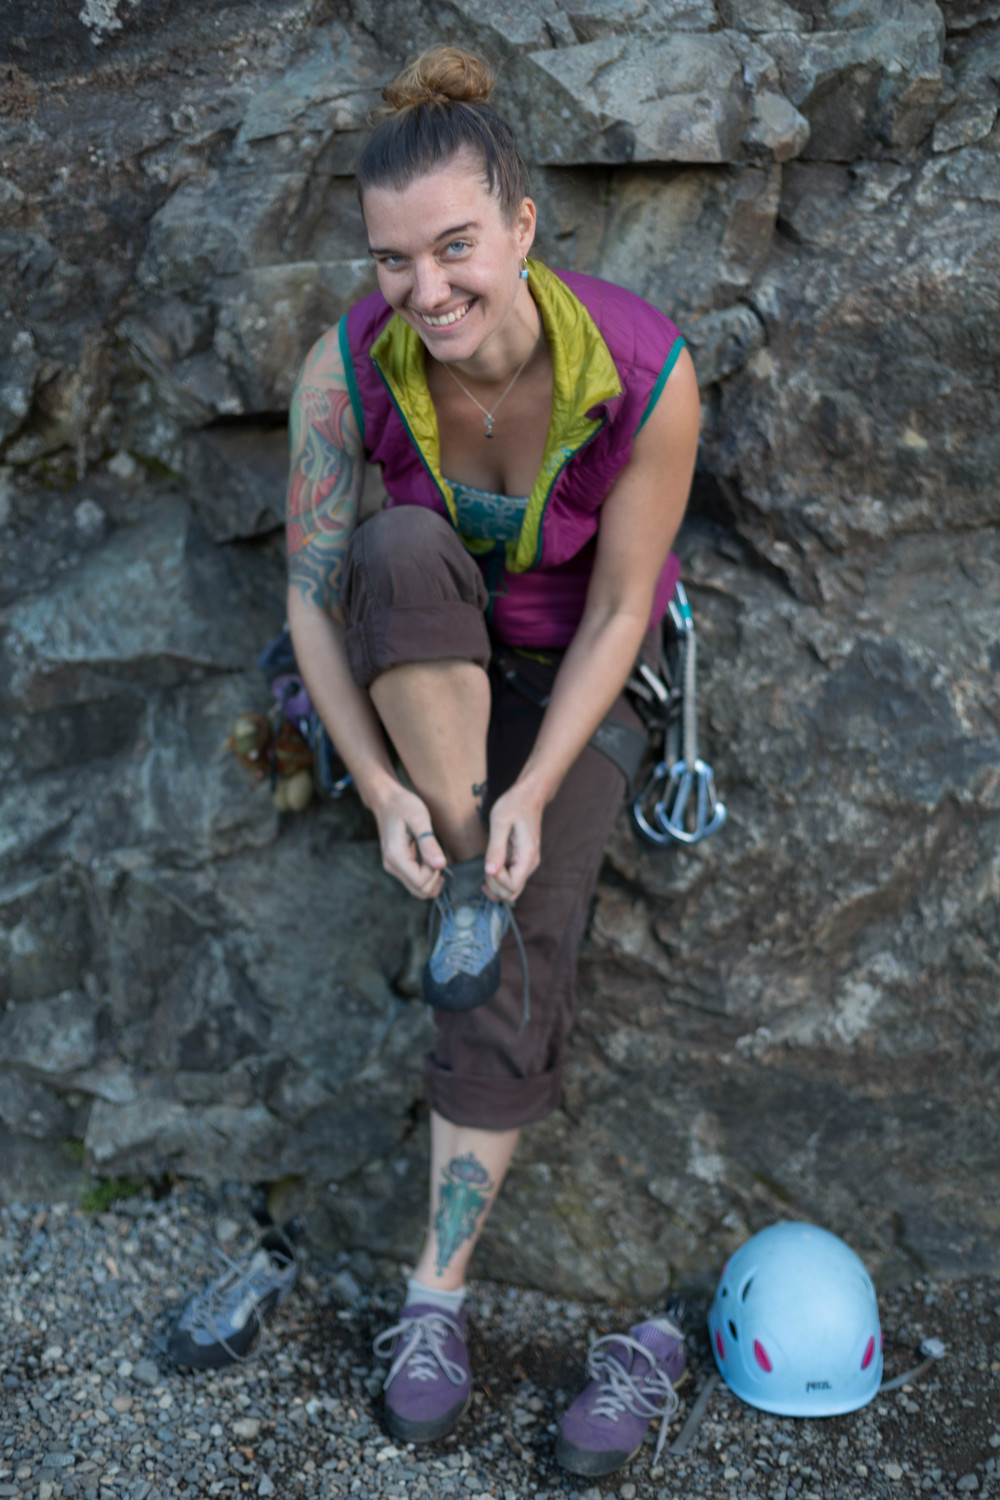 Co-founder and current Mamma Bear to the She Rocks group Alexis Vergalla (photo credit: Daniel Silverberg). Alexis has been with She Rocks since the start and she has the purple swag to prove it. Originally from NJ, she moved to Seattle in 2008 and started climbing in 2010. In addition to She Rocks she's actively involved in the Washington Alpine Club. Her first love is alpine but is happy climbing anything from ice to boulders.